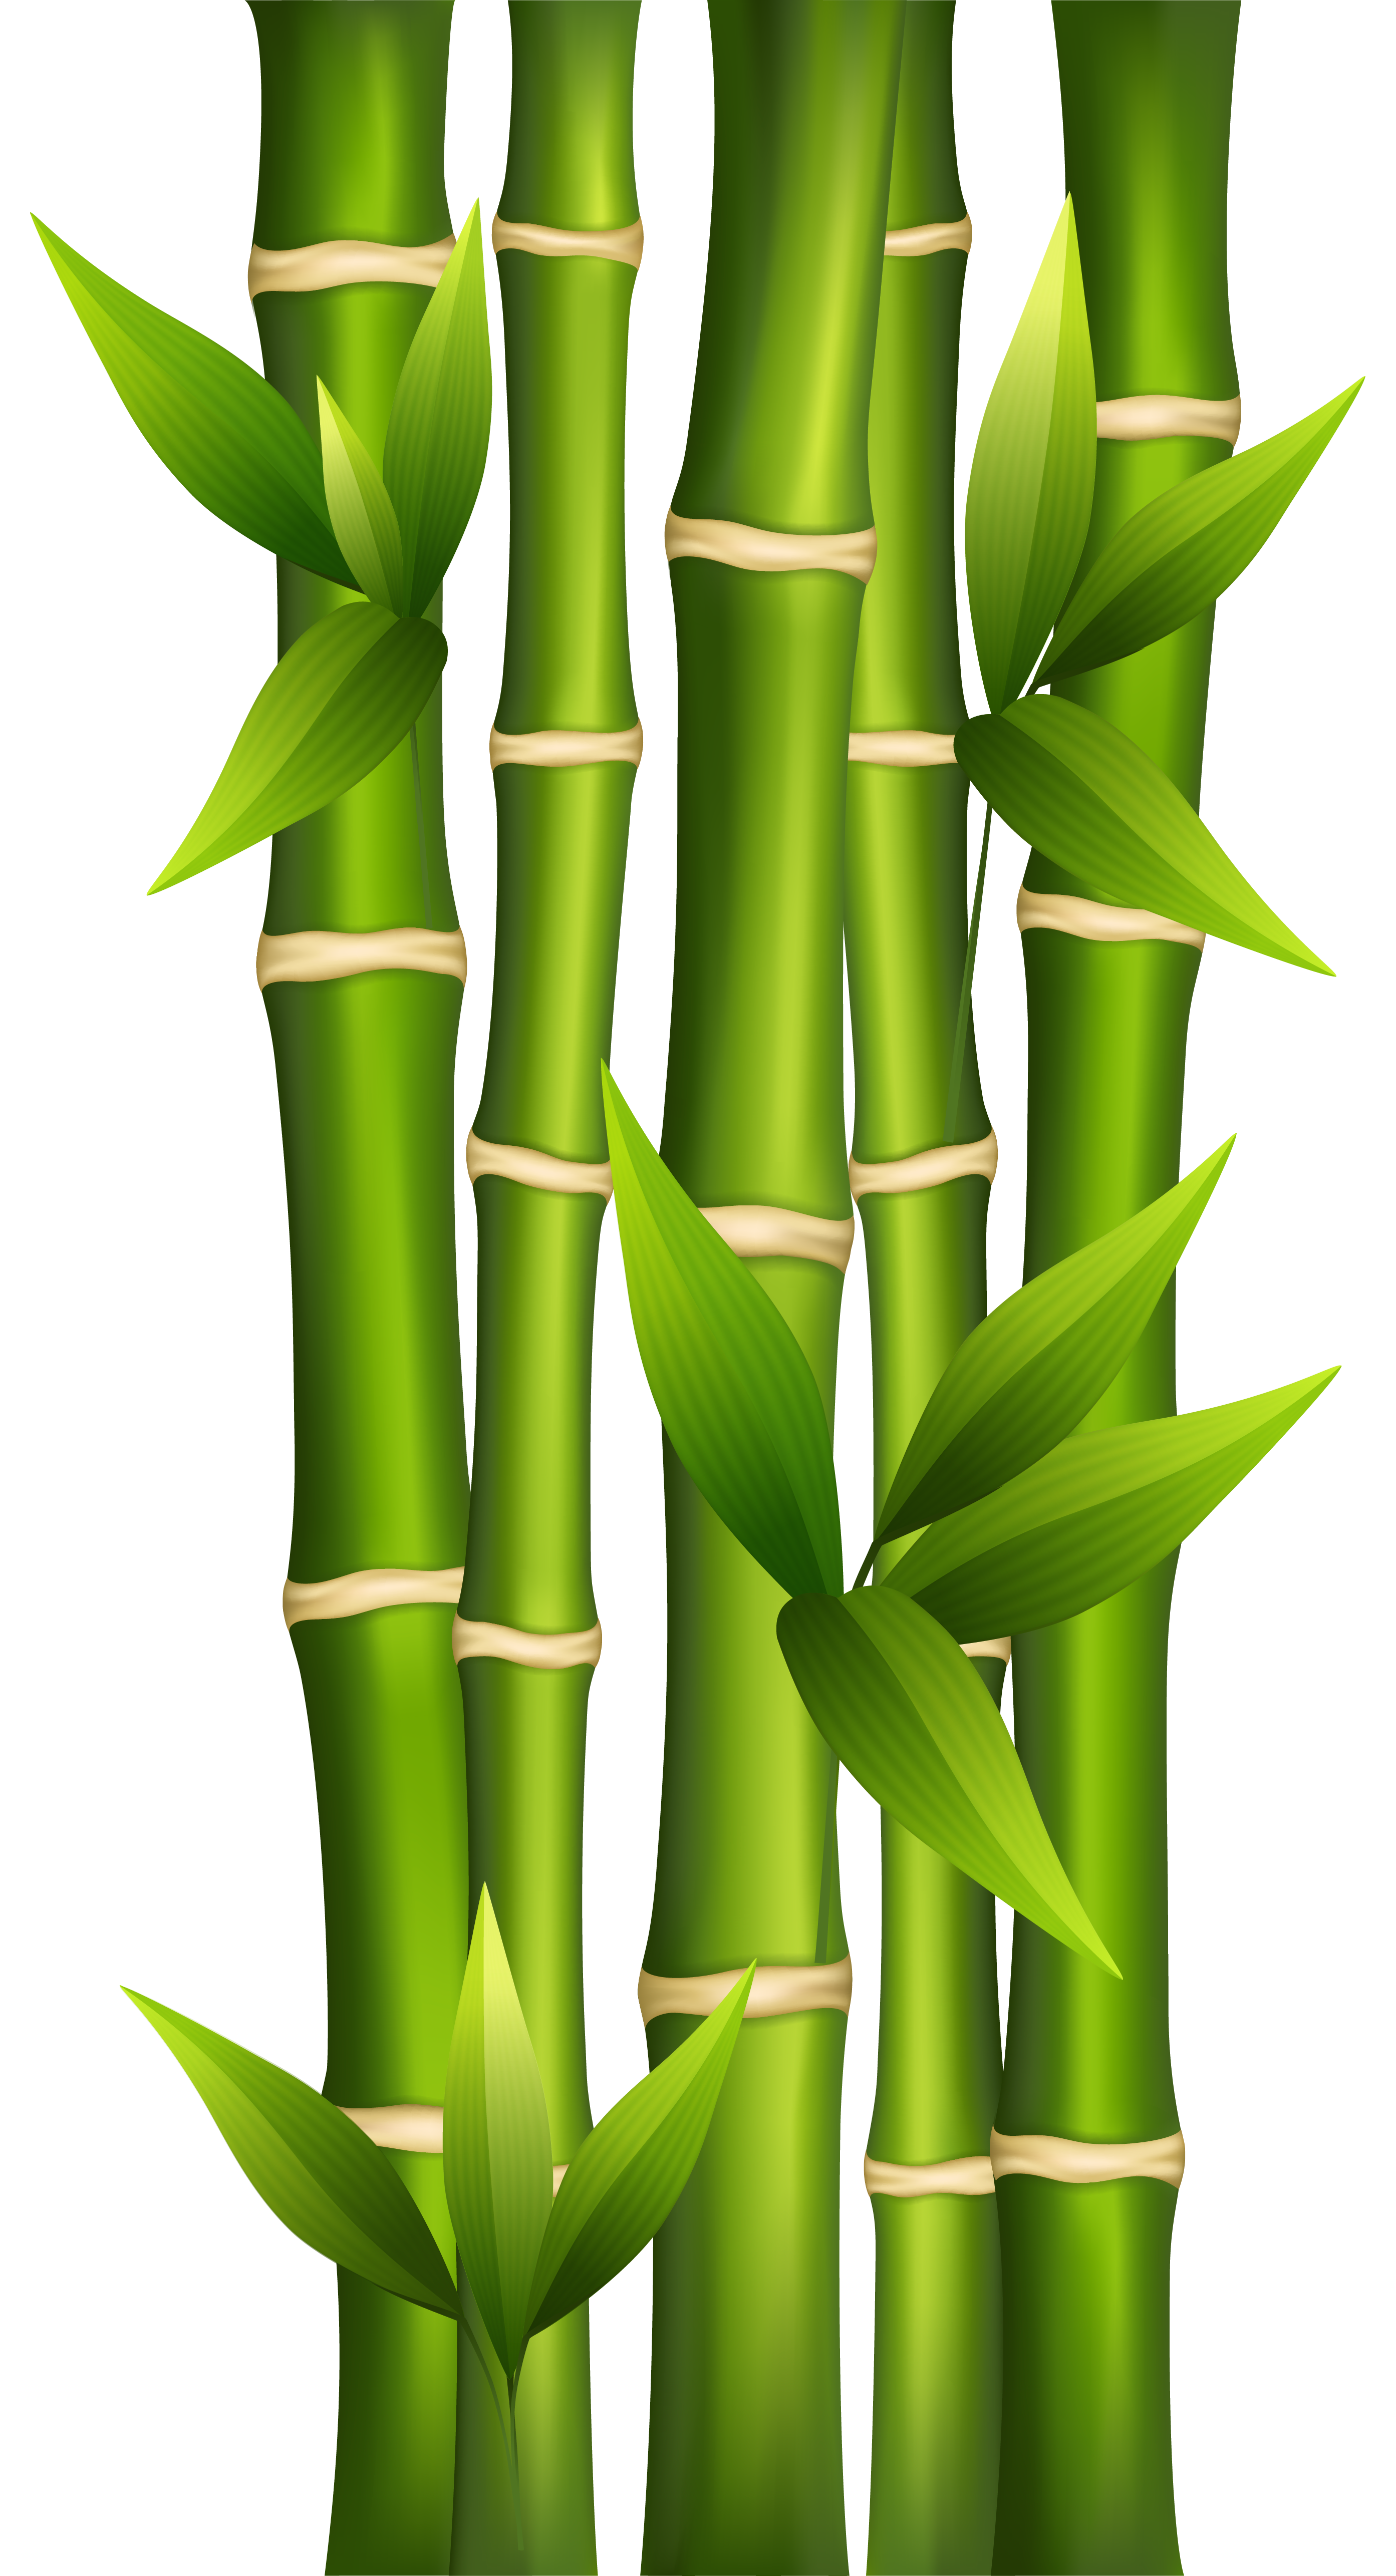 Bamboo clipart #6, Download drawings